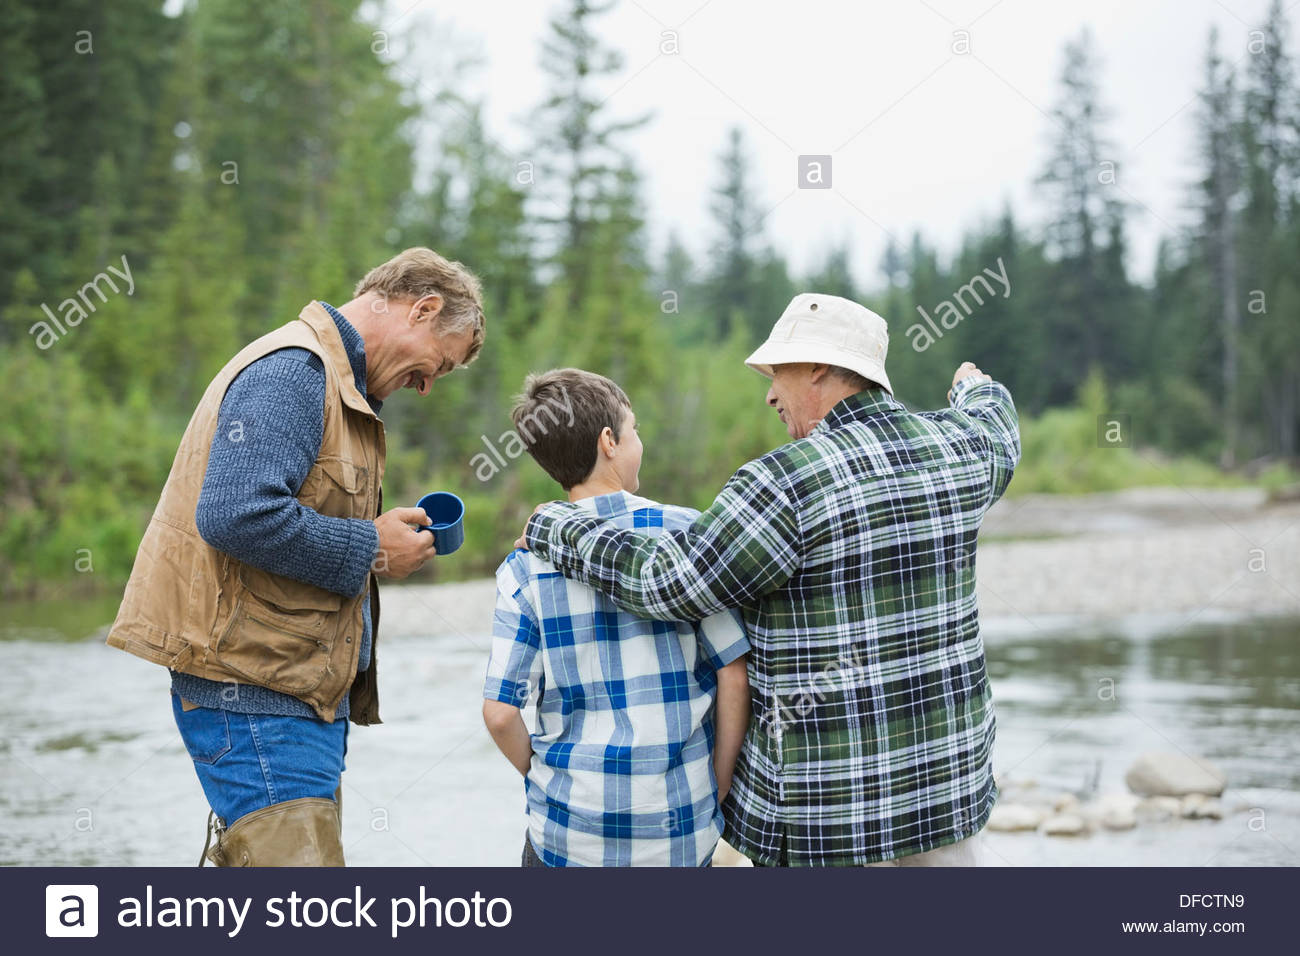 Rear view of male family members near a river Stock Photo